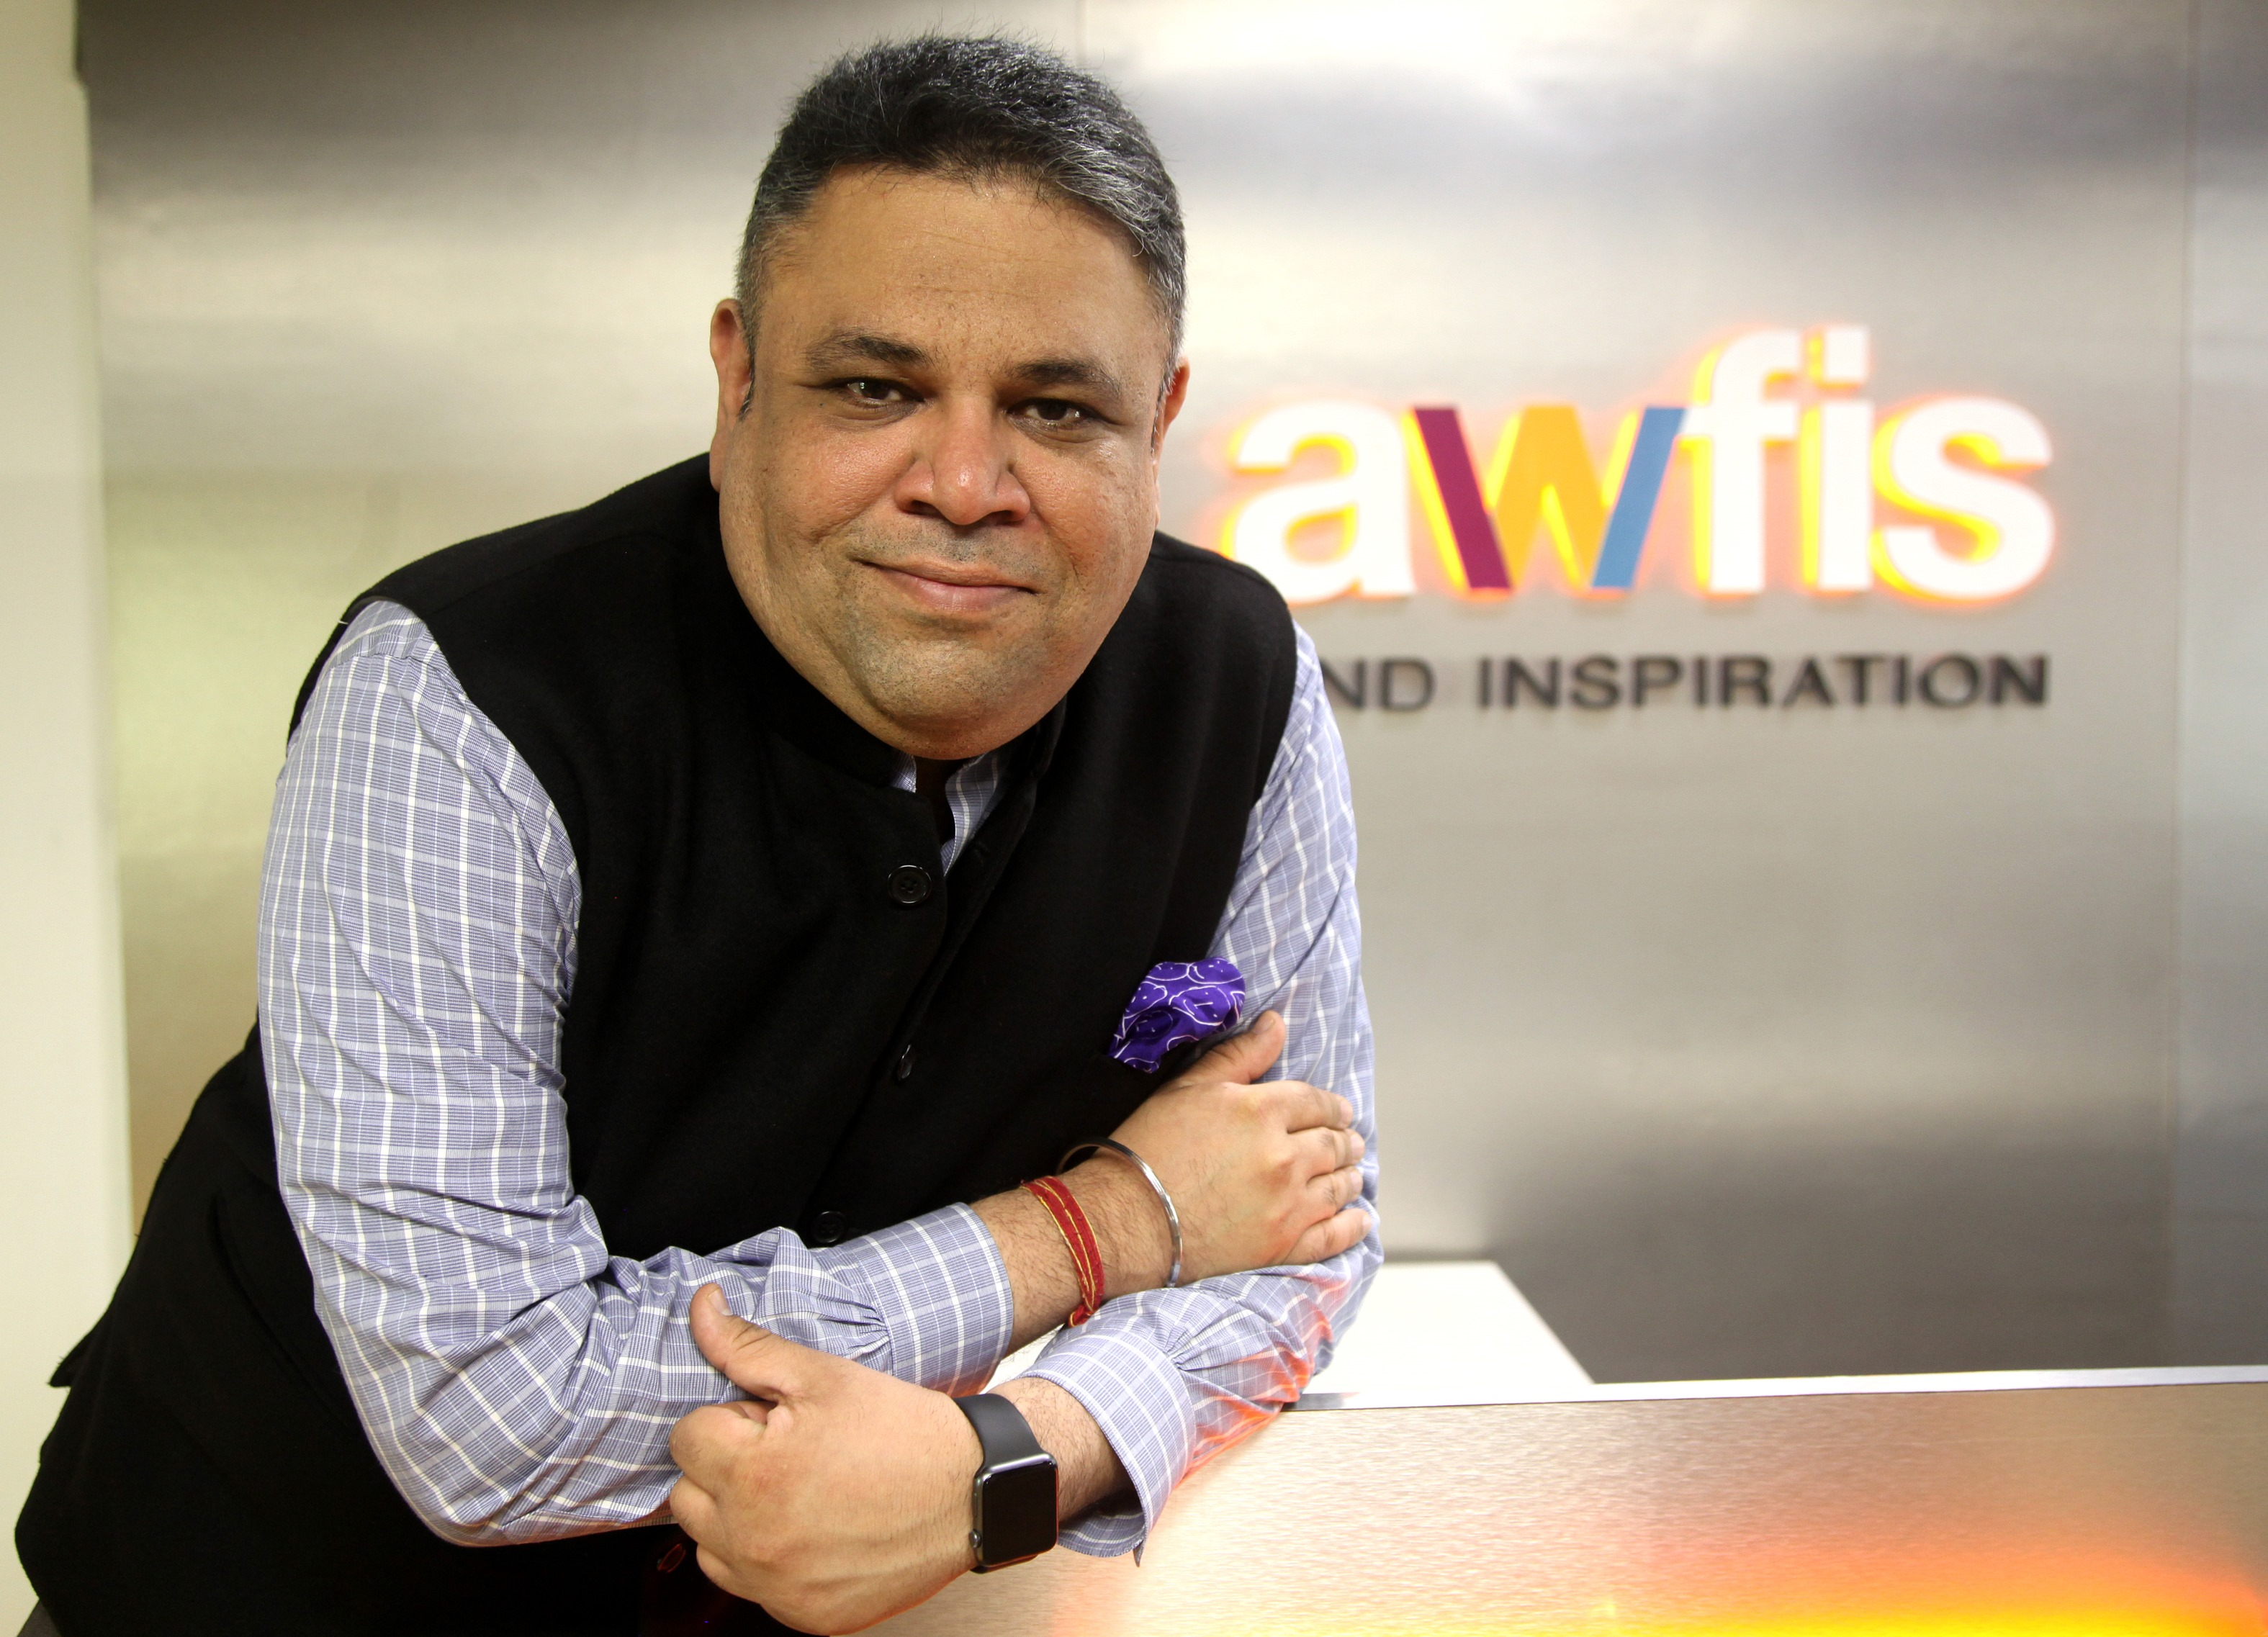 Awfis Founder, Mr Amit Ramani